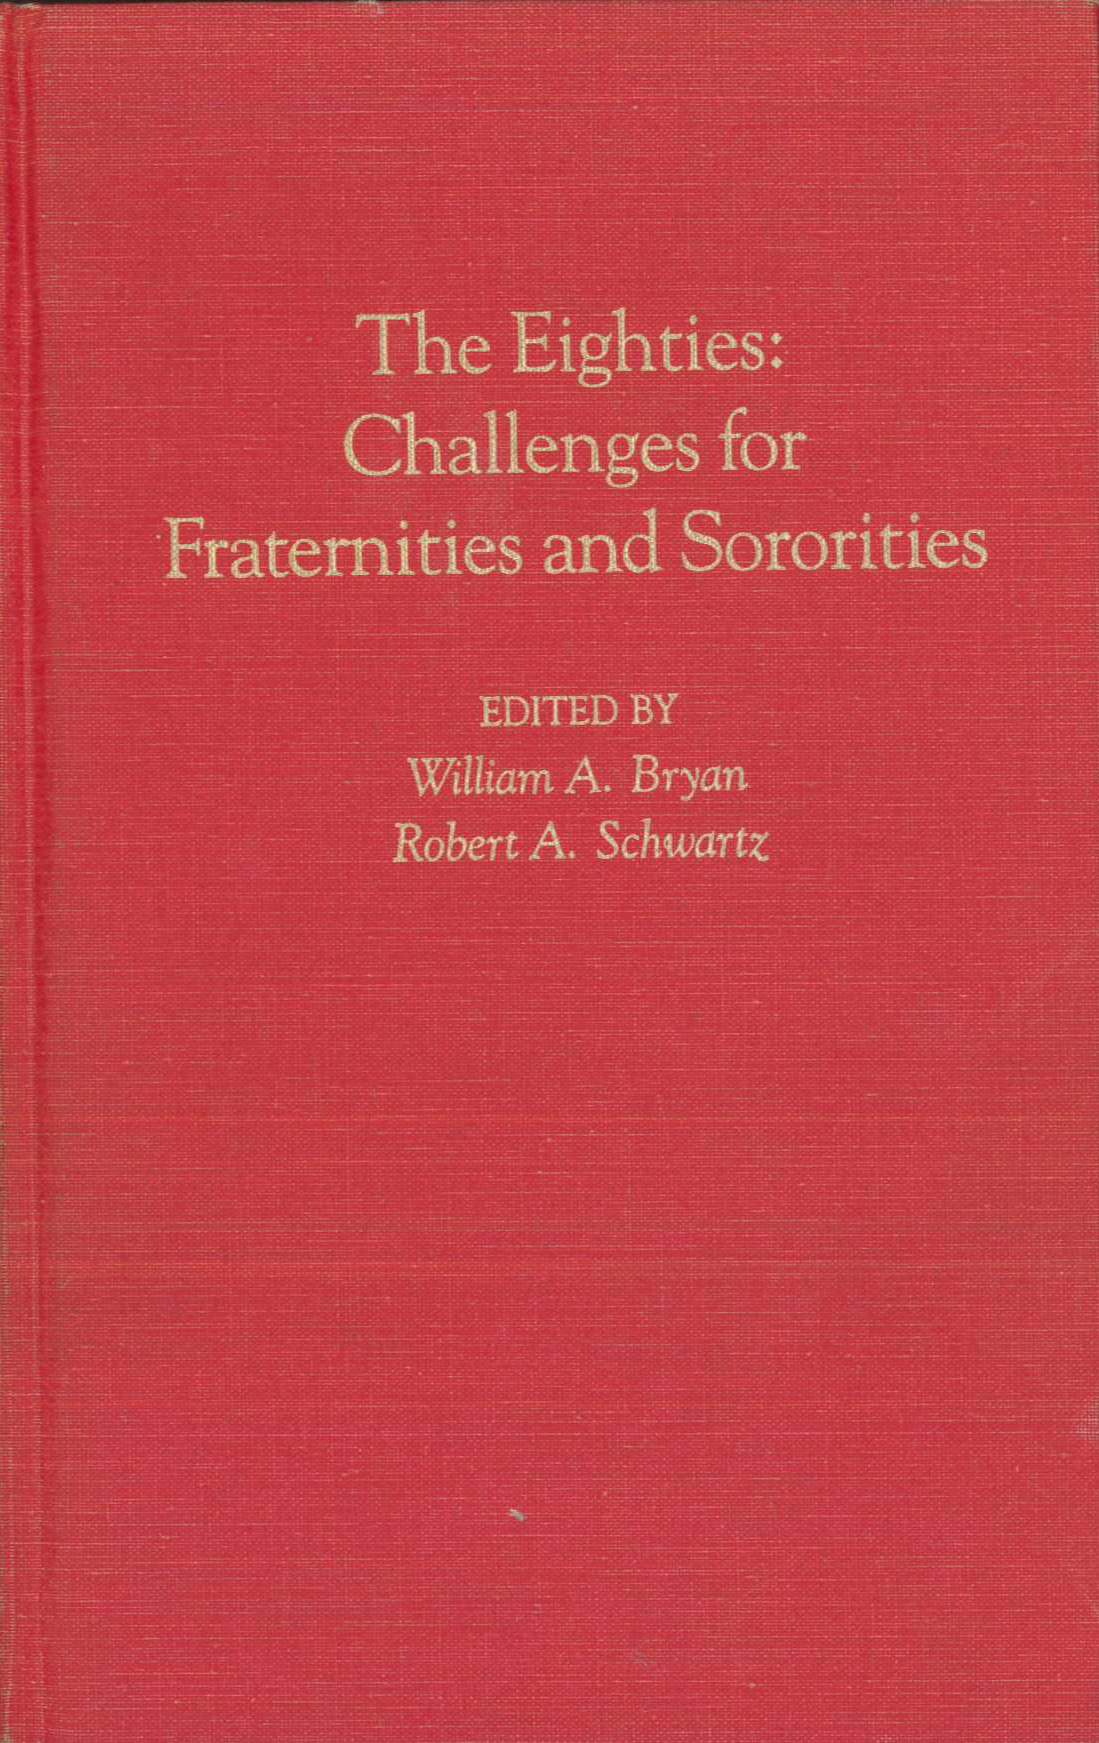 The Eighties: Challenges for Fraternities and Sororities